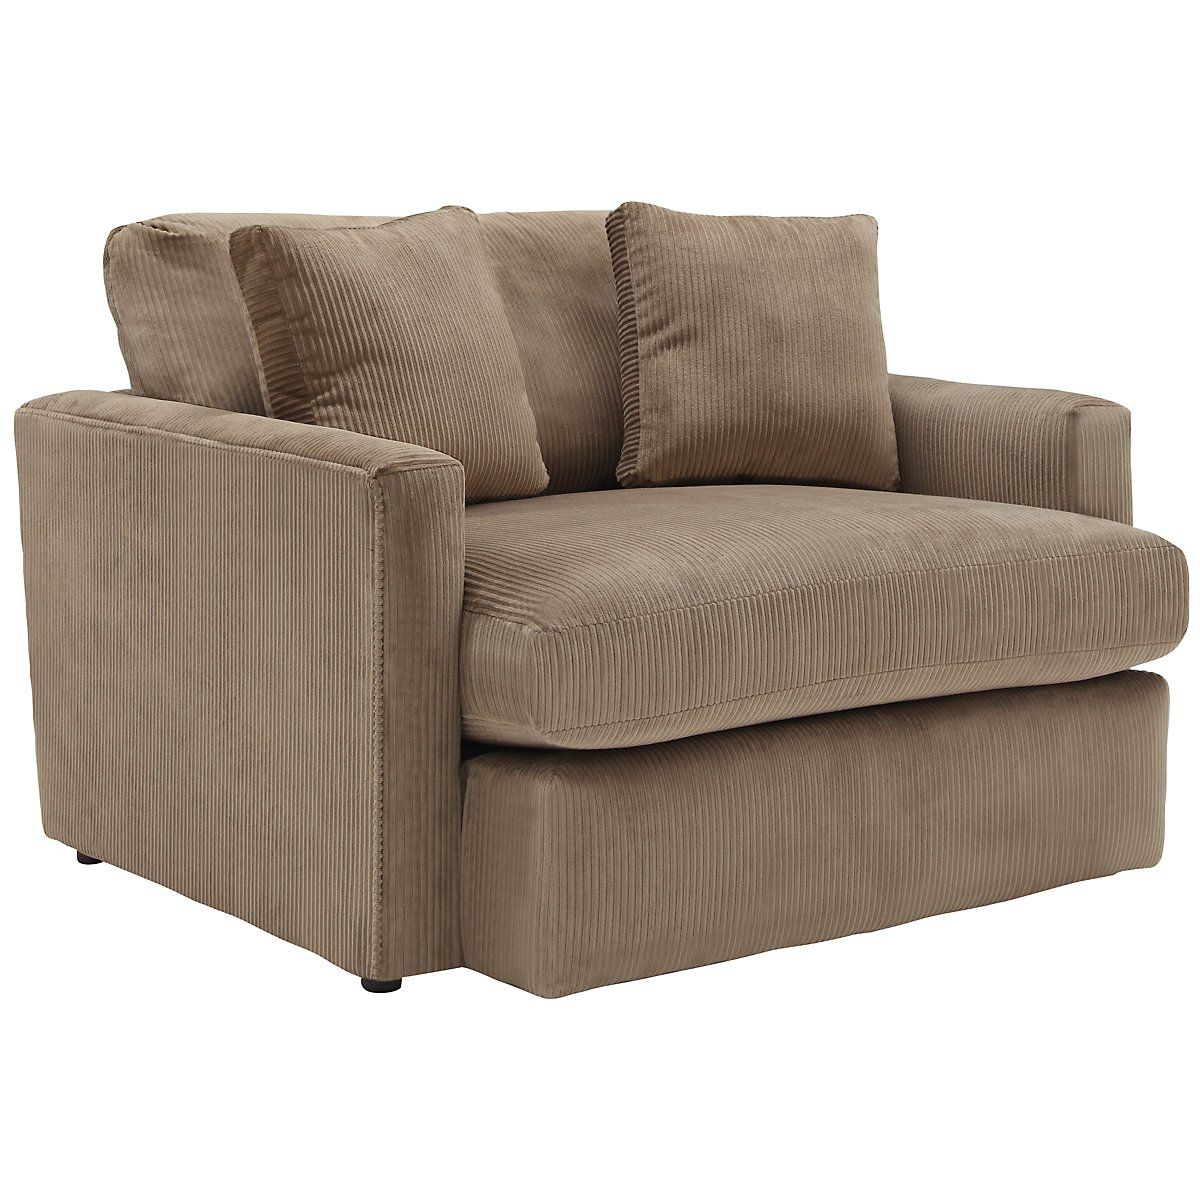 Tara2 Dark Taupe Microfiber Chair